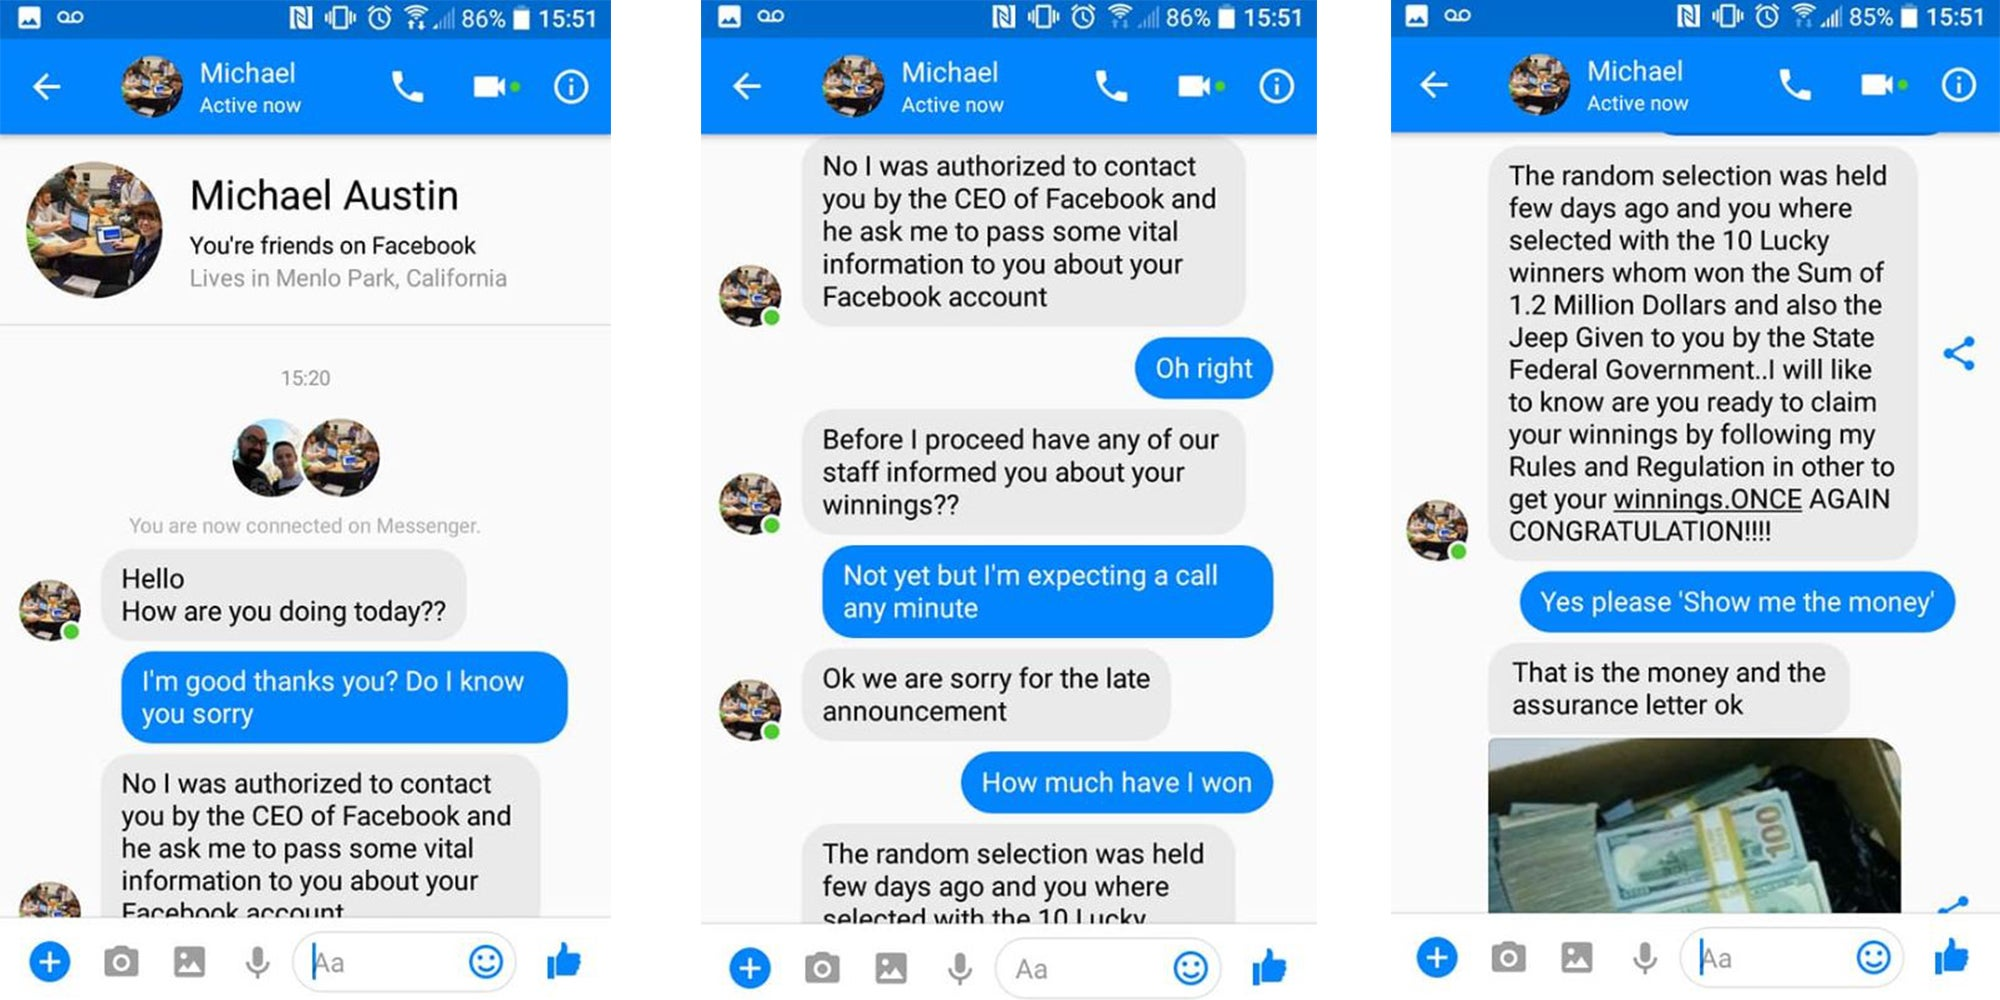 Allover30 Erica J facebook: man gets his own back on online scammer in